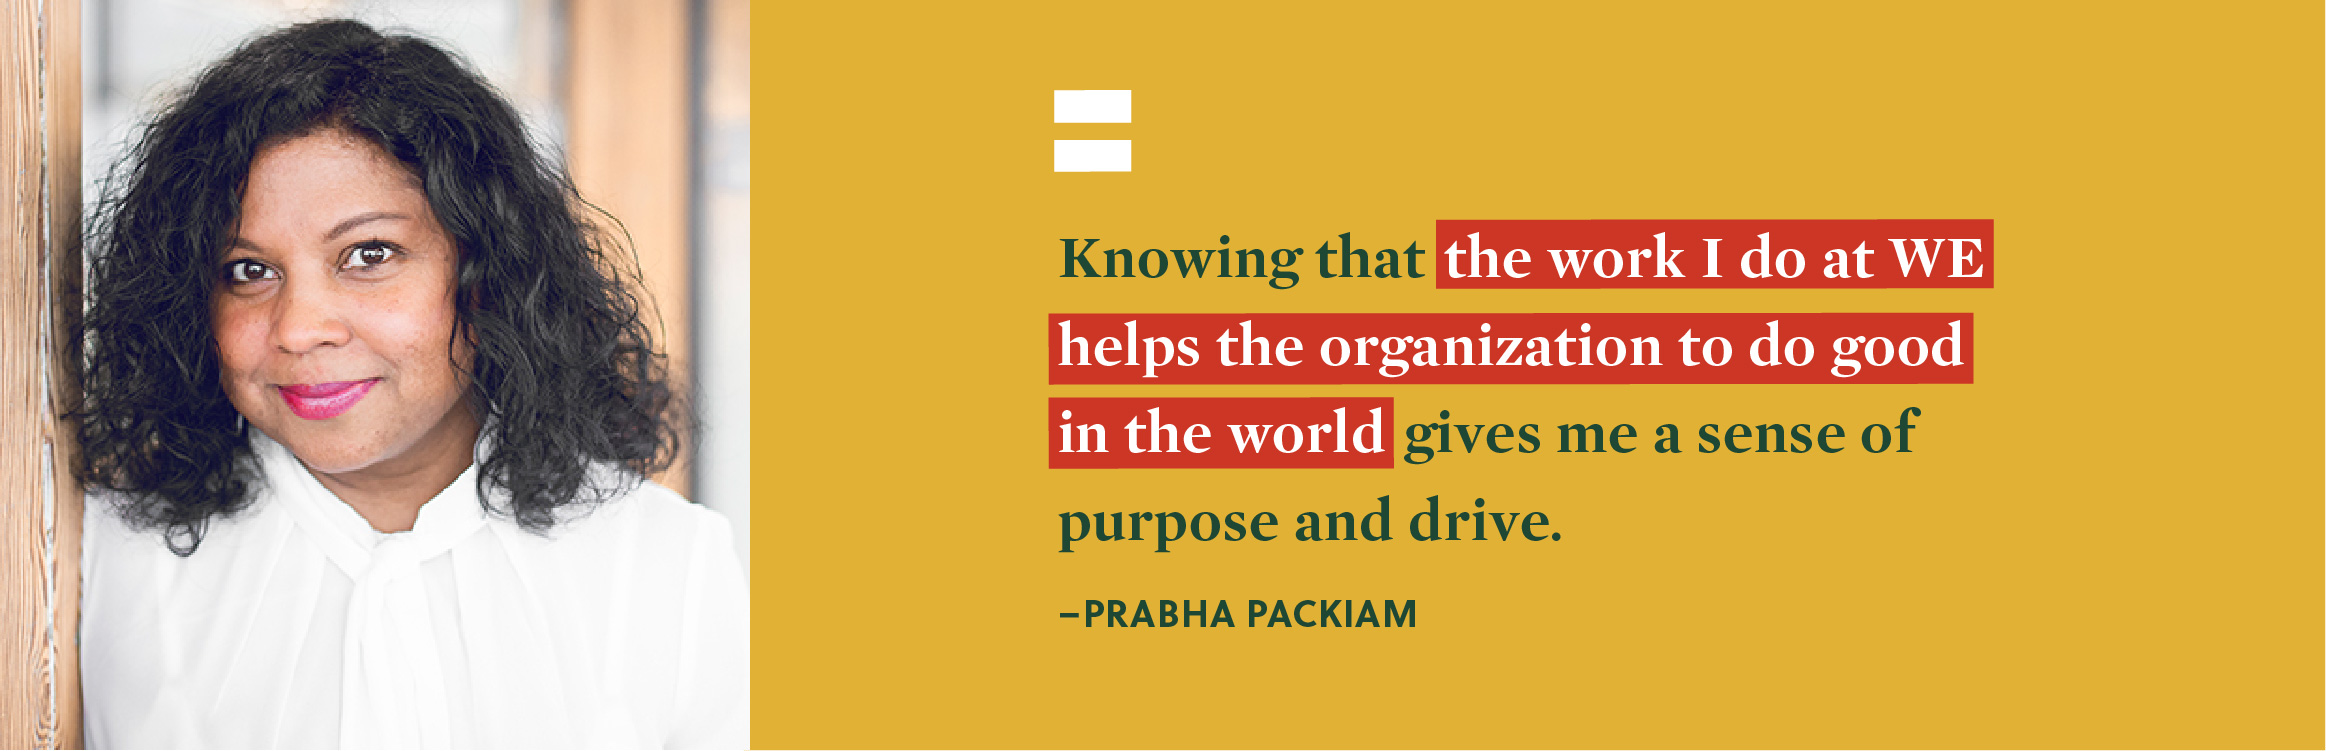 """Knowing that the work I do at WE helps the organization to do good in the world gives me a sense of purpose and drive."" - Prabha Packiam."